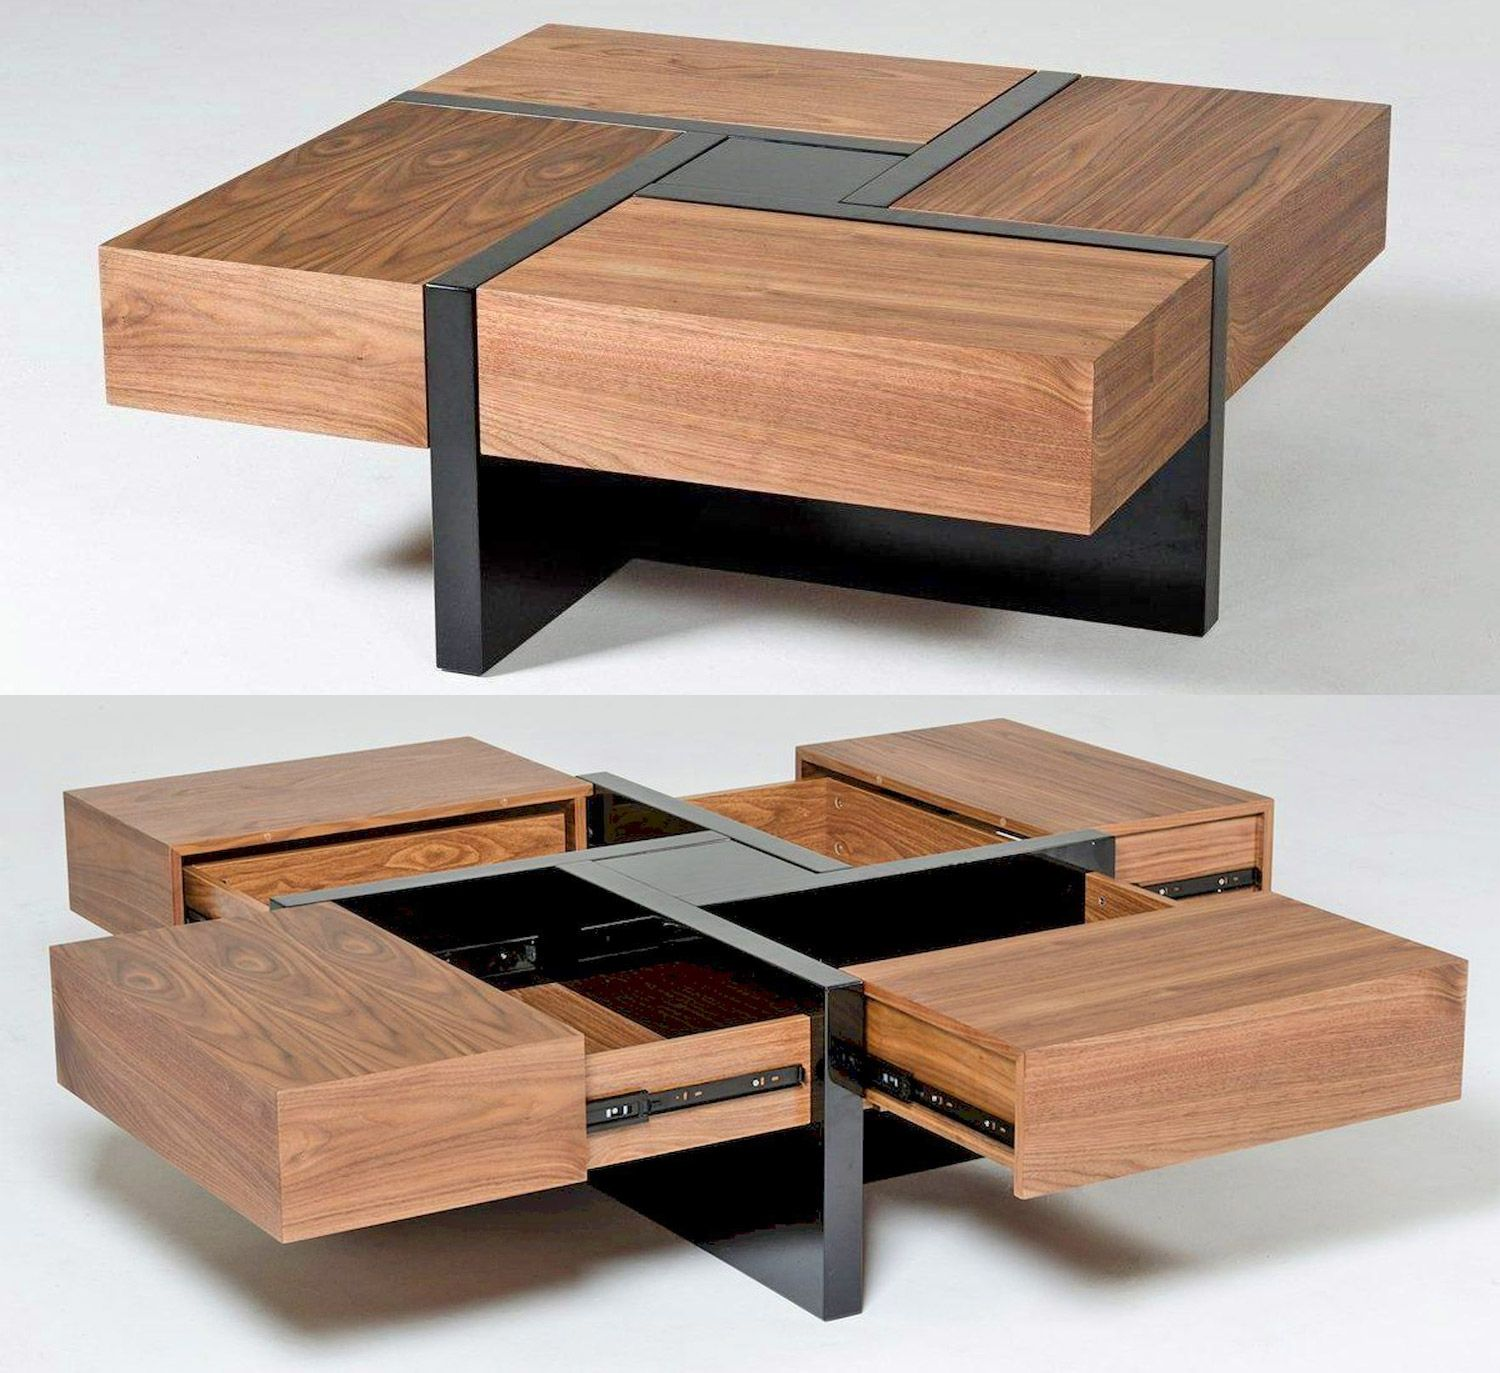 This Beautiful Wooden Coffee Table Has 4 Secret Drawers That Make For A Really Cool Design Tea Table Design Wooden Coffee Table Modern Square Coffee Table [ 1373 x 1500 Pixel ]